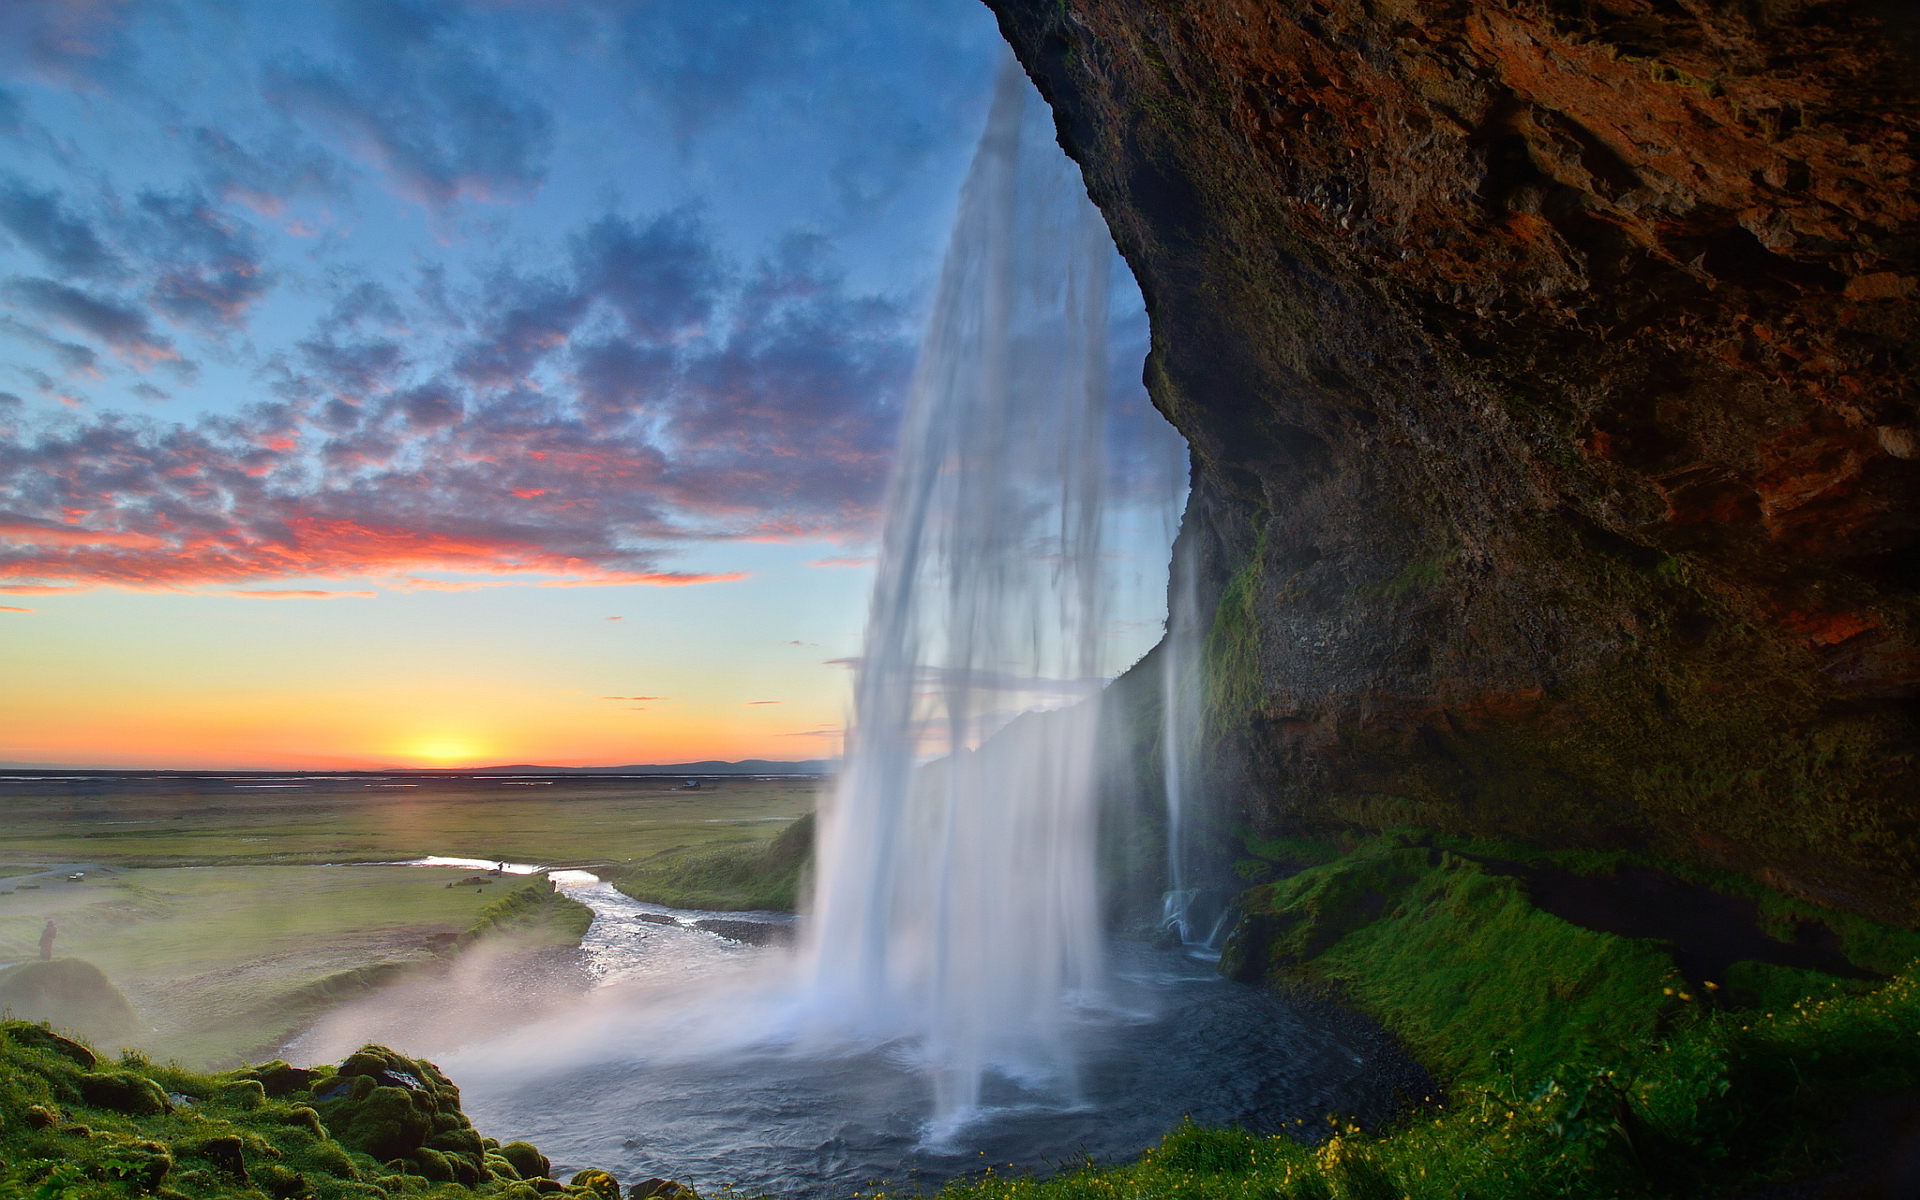 Waterfall Seljalandsfoss Island Hd Desktop Wallpapers 4k Hd